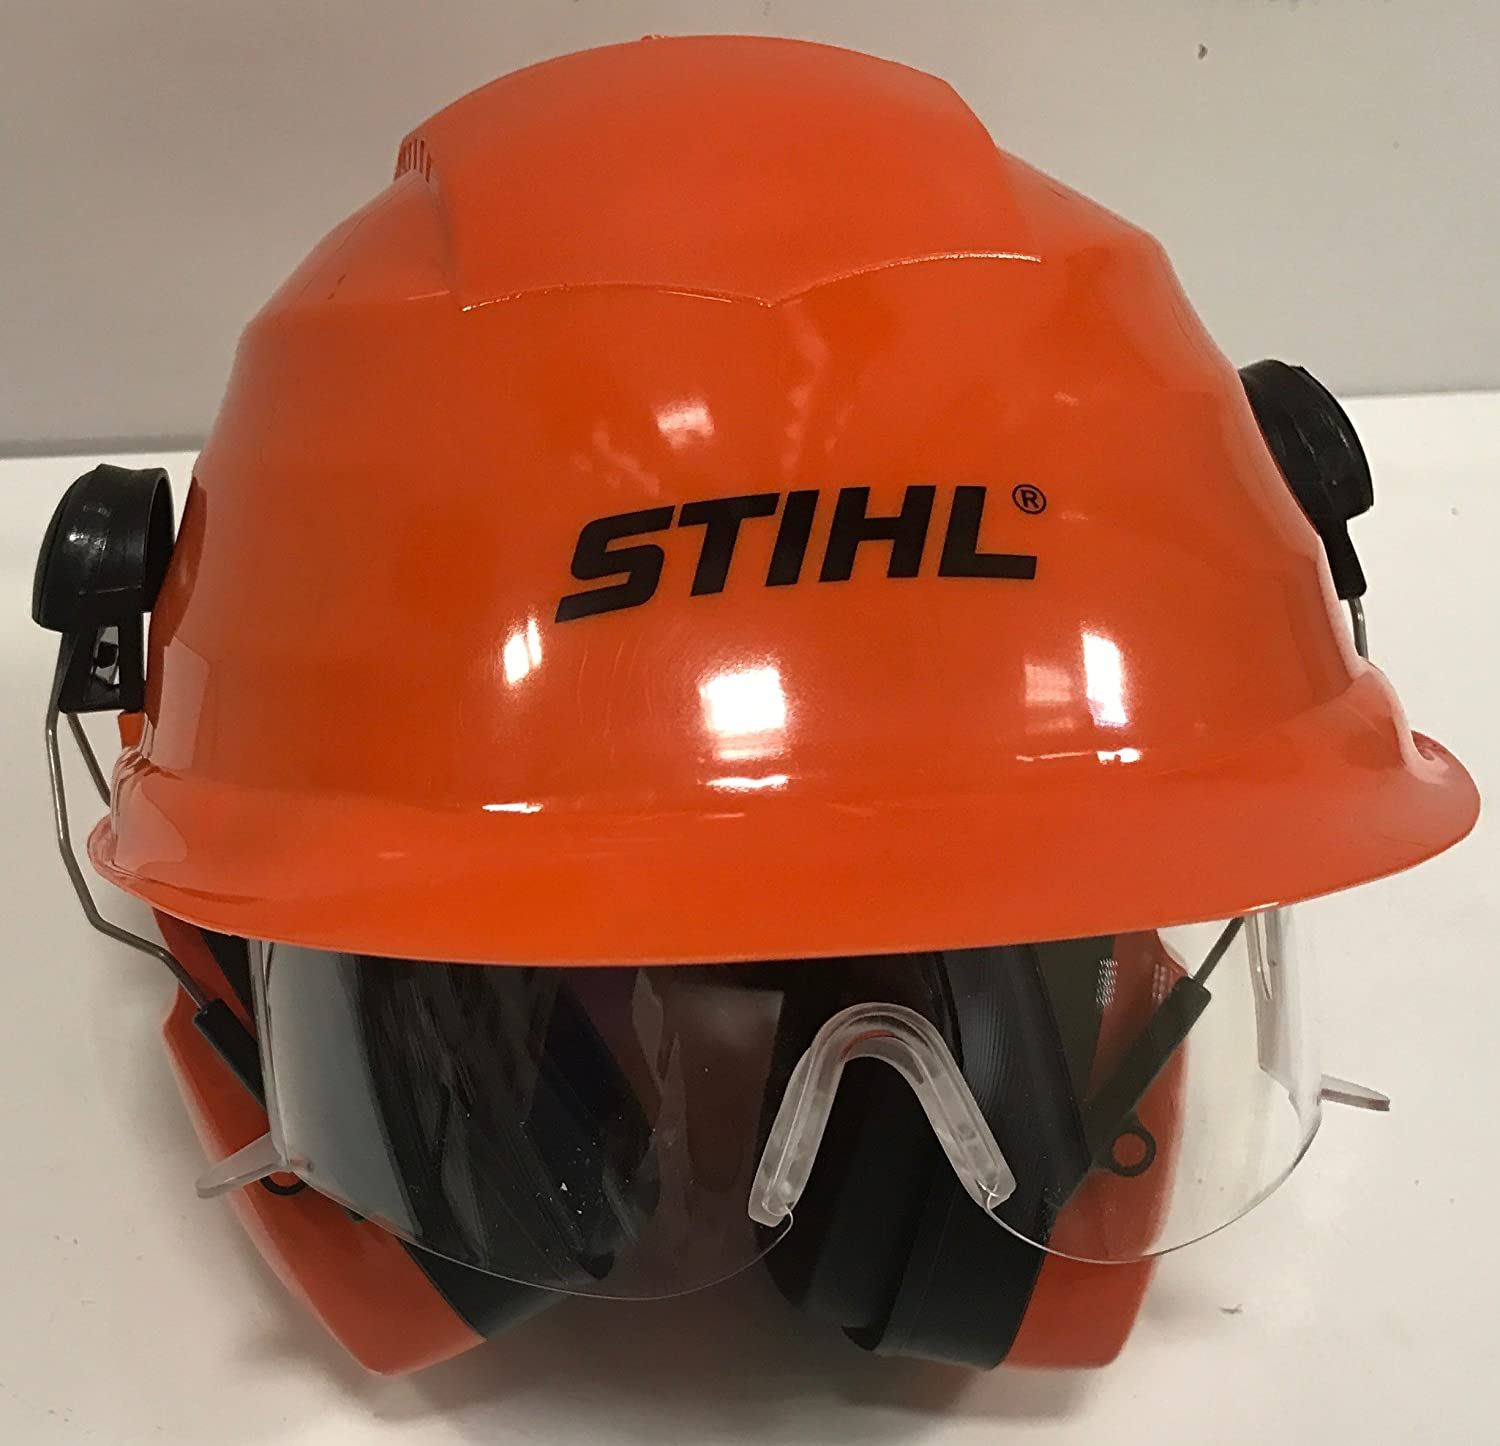 Stihl 0000 884 0180 - Casco de seguridad con gafas: Amazon ...